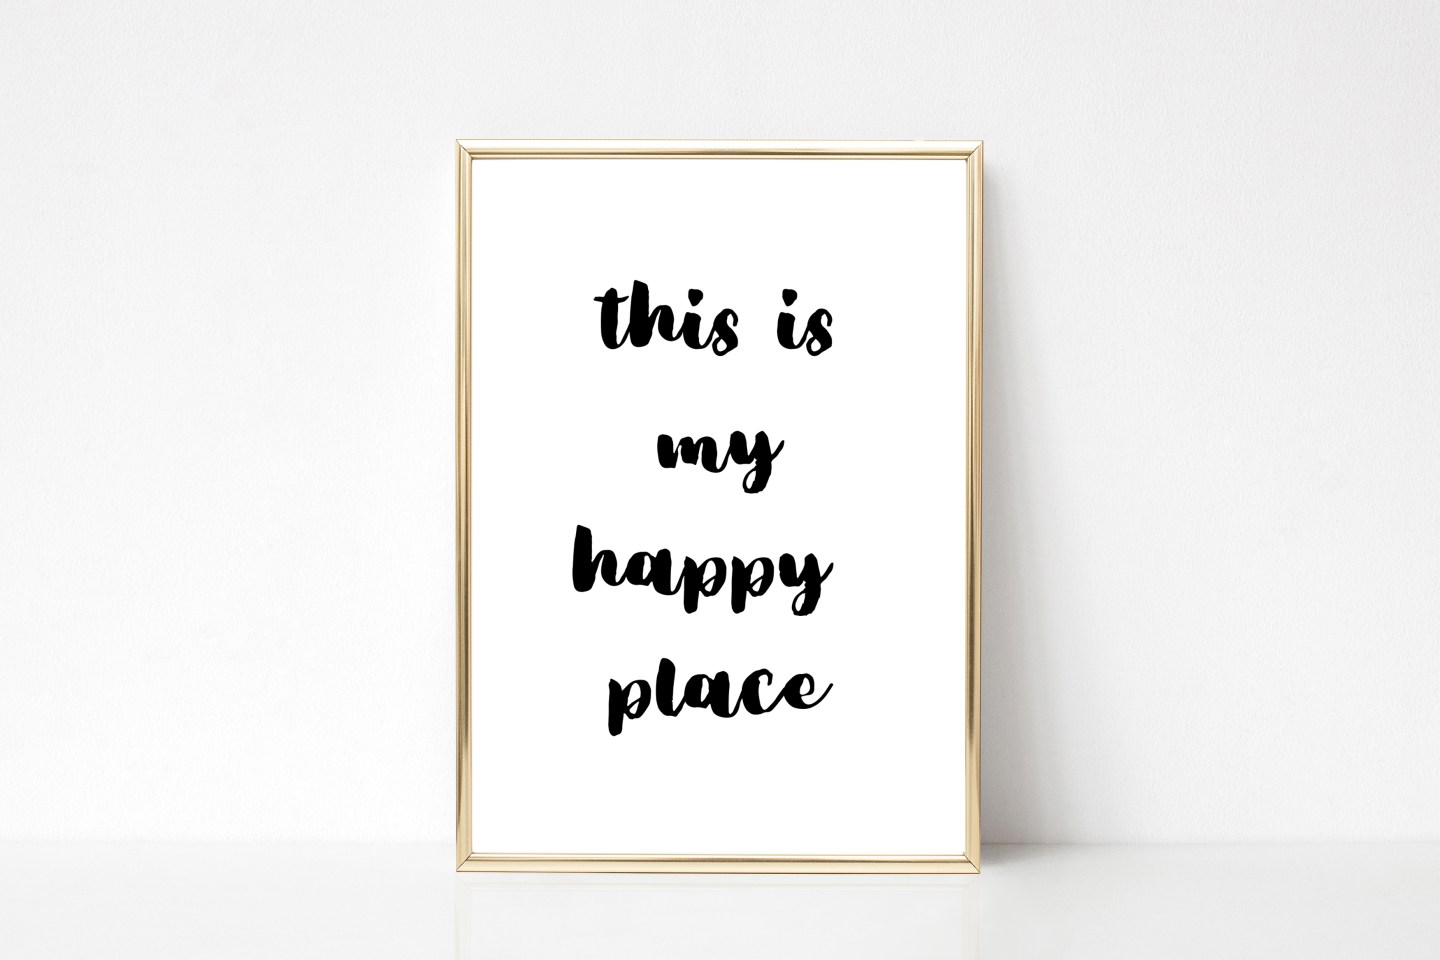 Free Printable Bedroom Wall Art: This Is My Happy Place